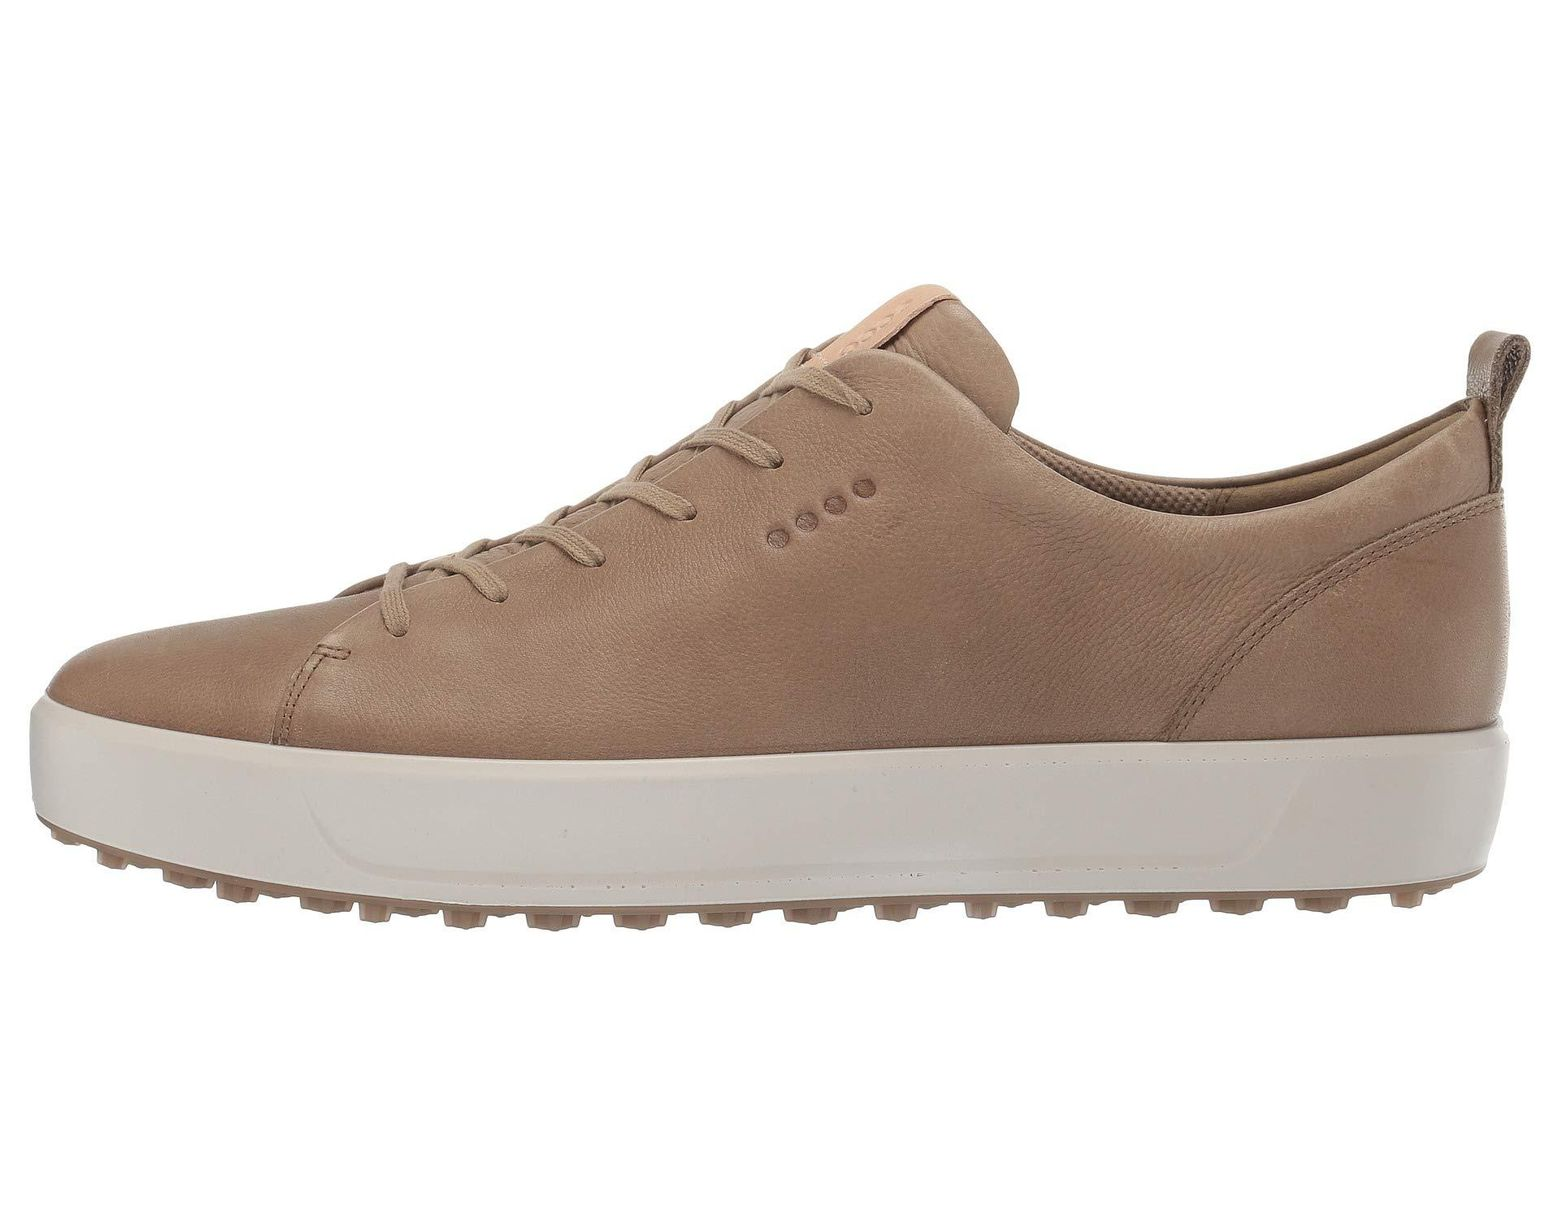 94bc240ef72d3 Ecco Soft Low Hydromax(r) (bright White) Men's Golf Shoes in Brown for Men  - Lyst